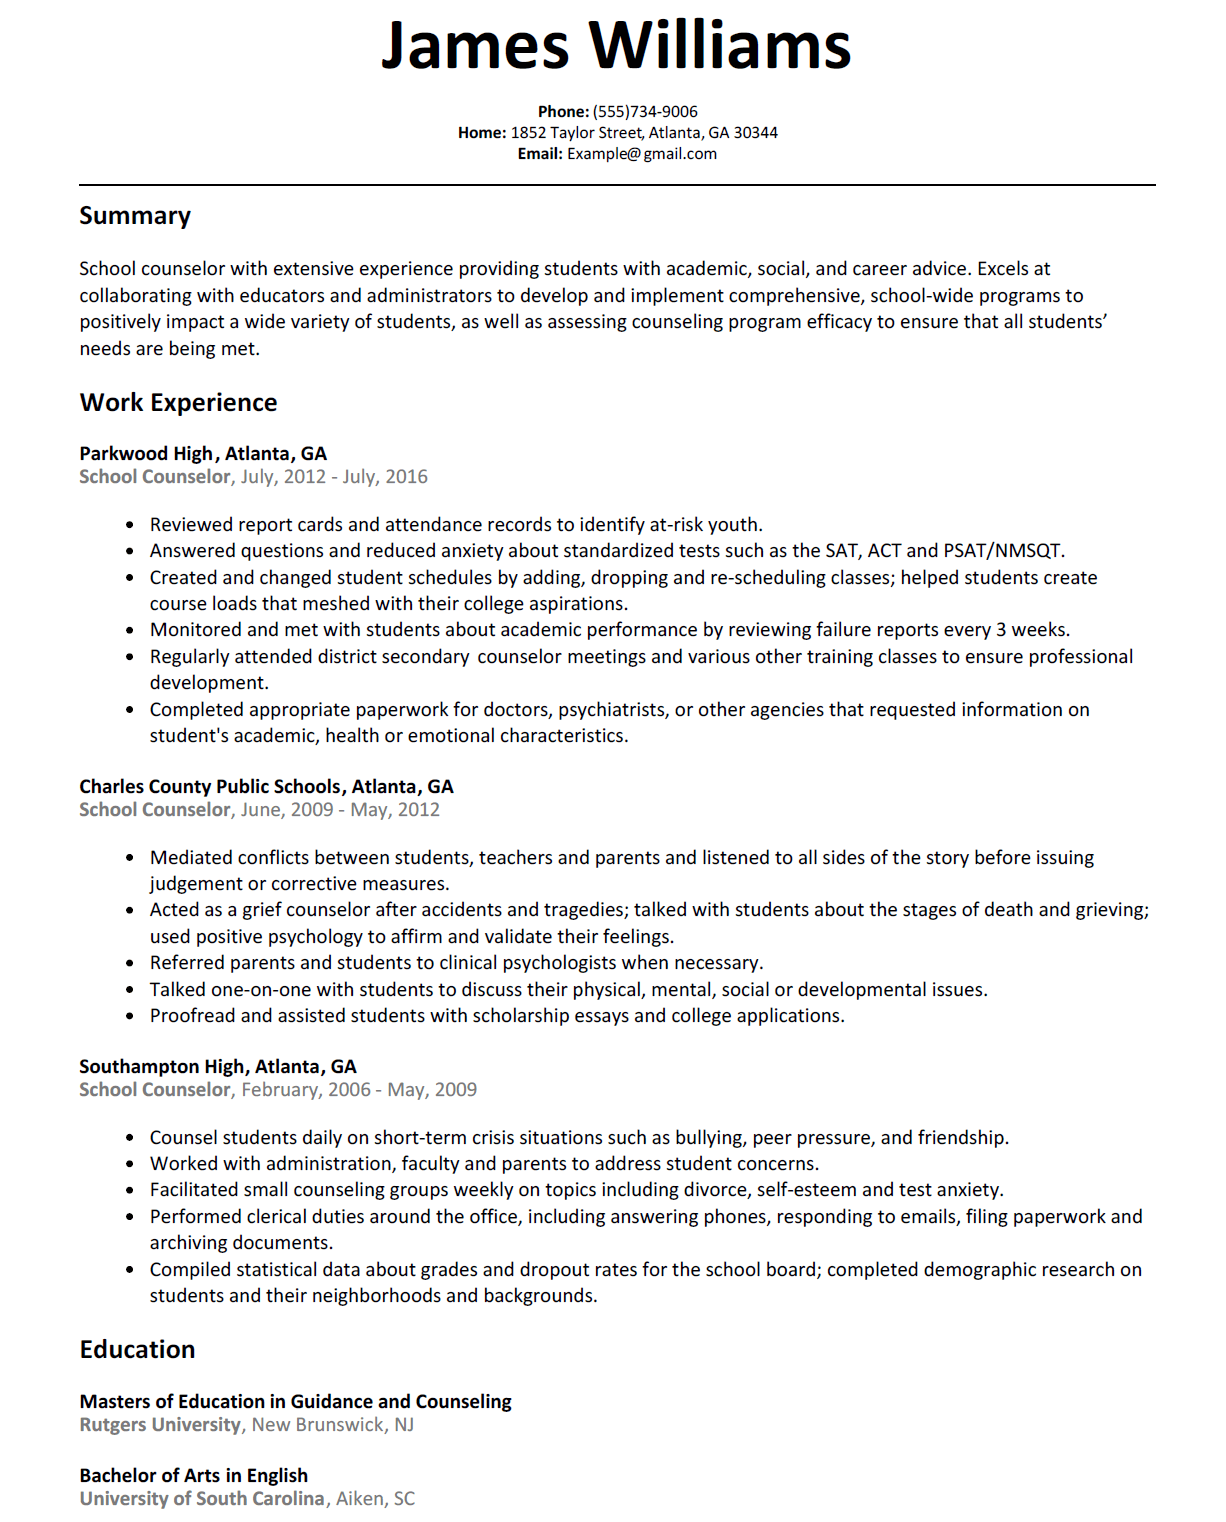 School Counselor Resume With Images